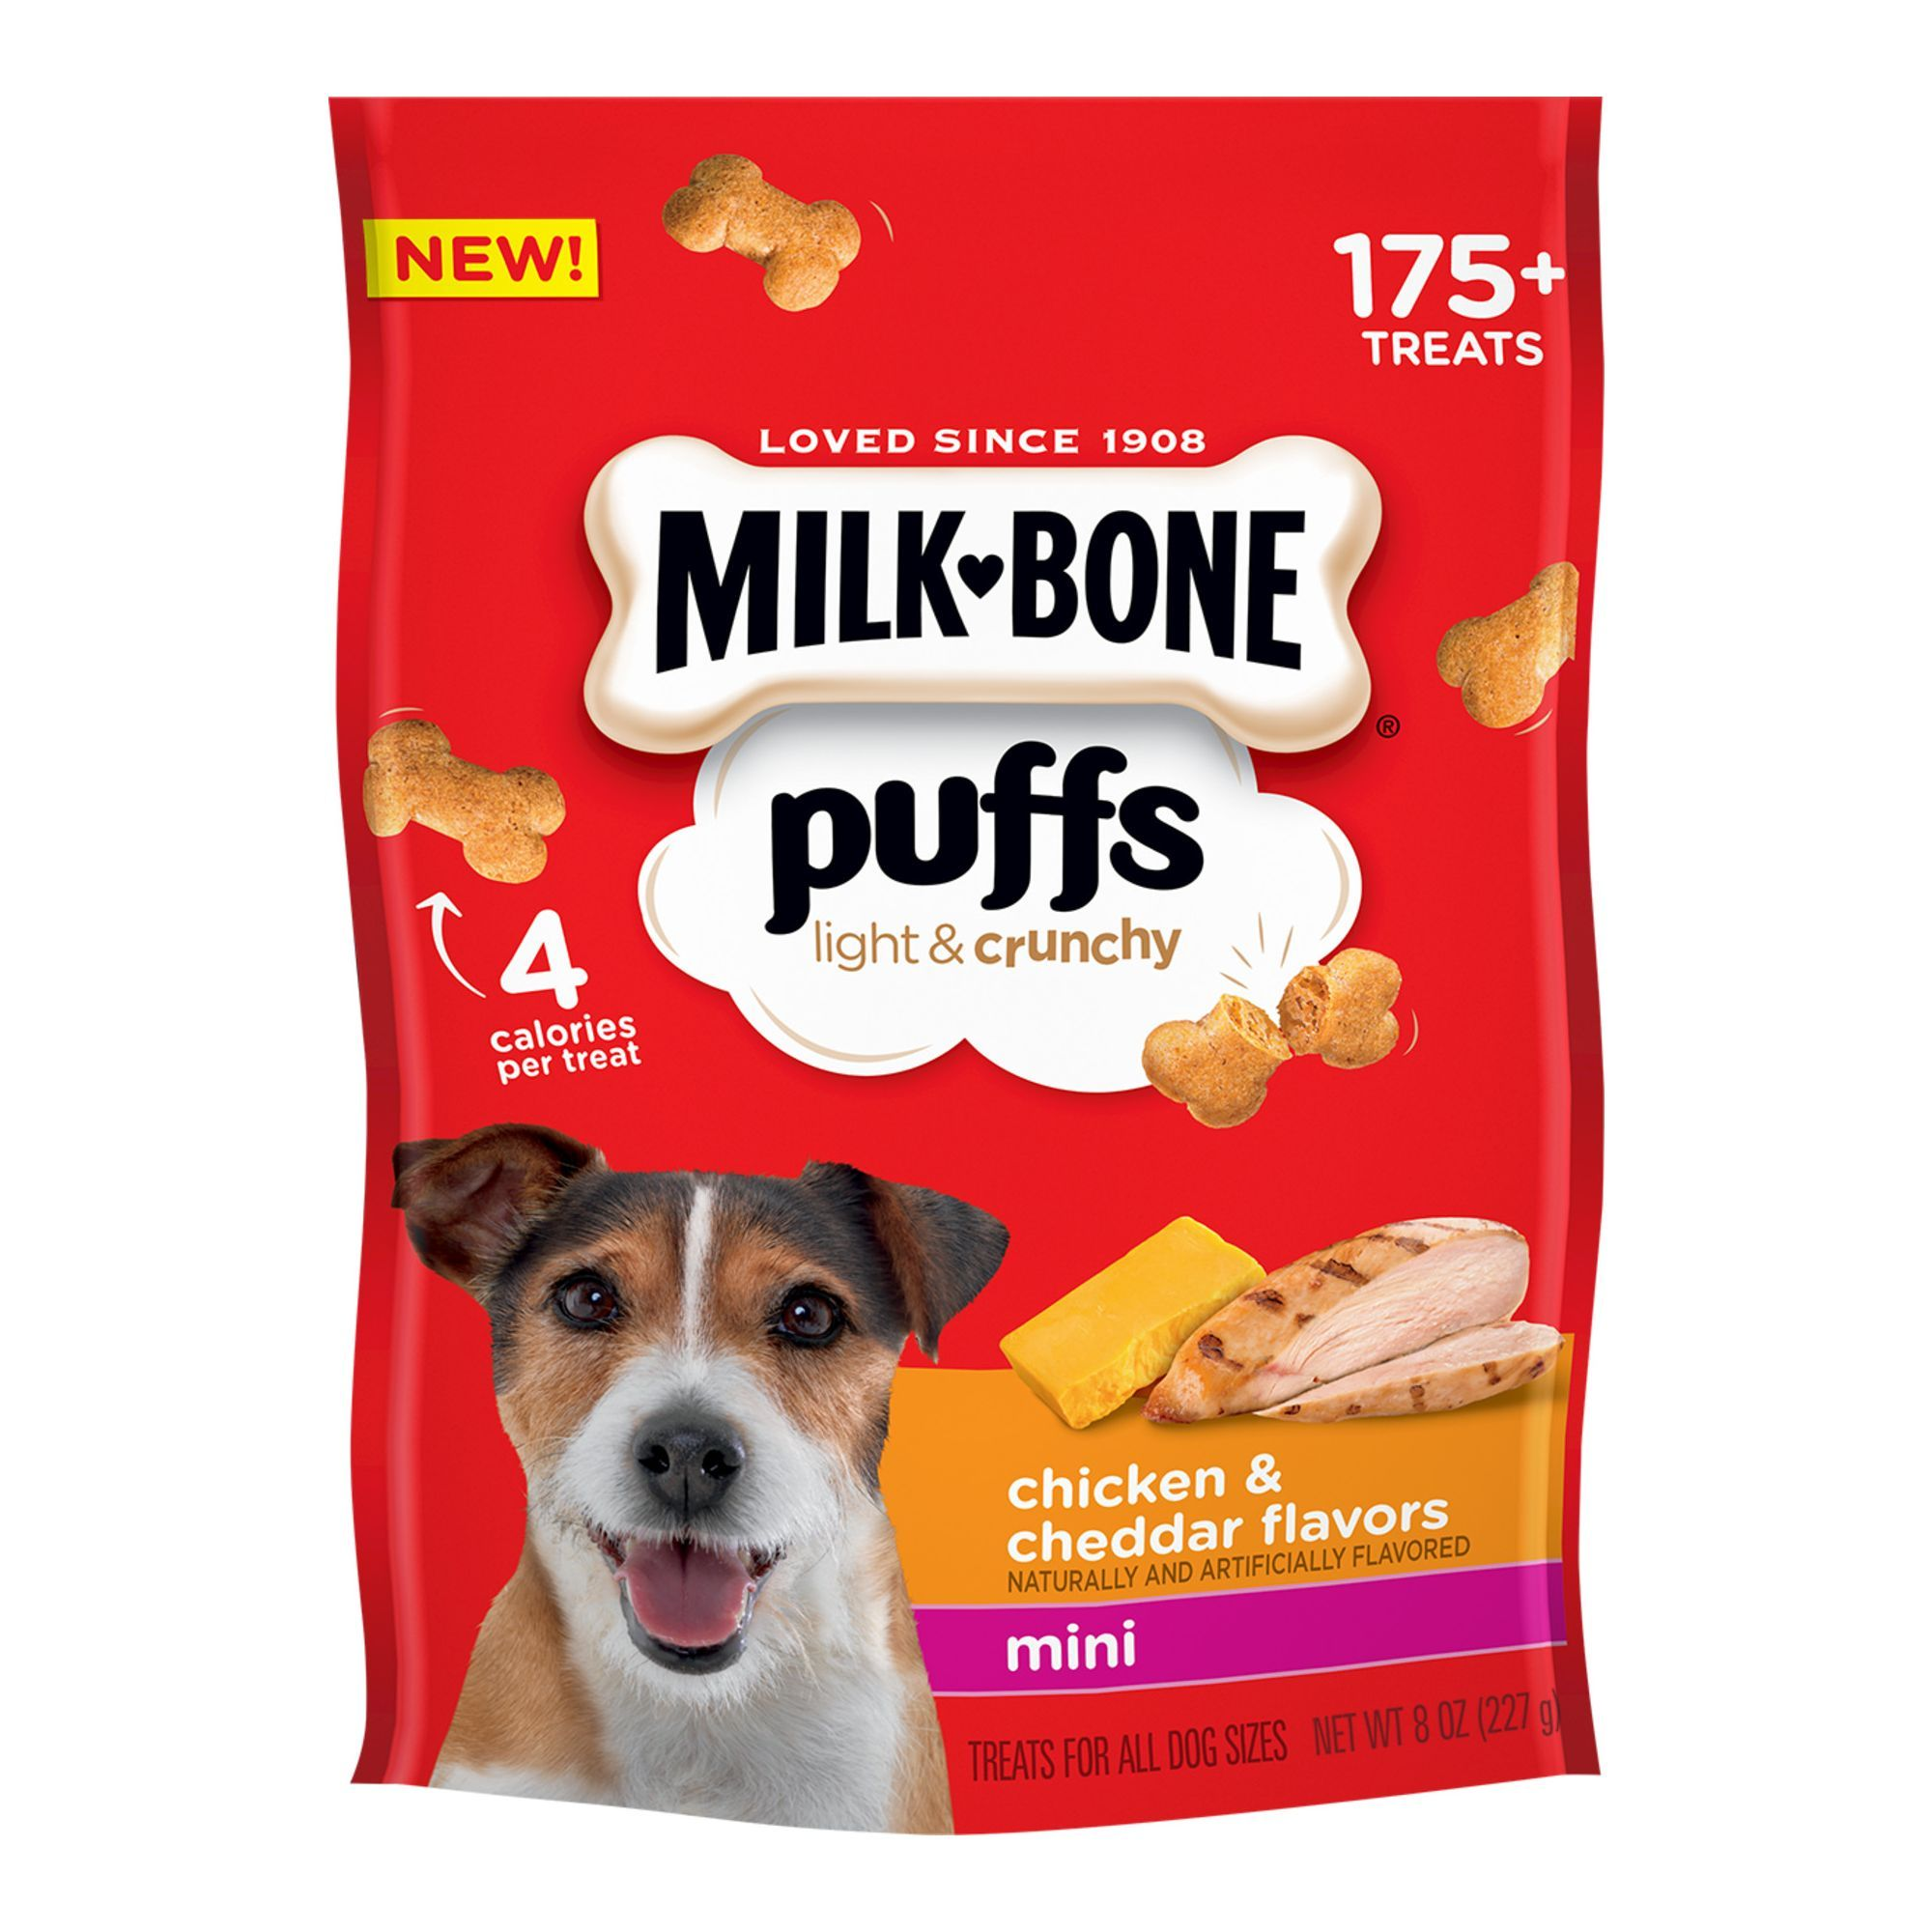 Milk Bone Puffs Light Crunchy Mini Dog Treat Chicken Cheddar